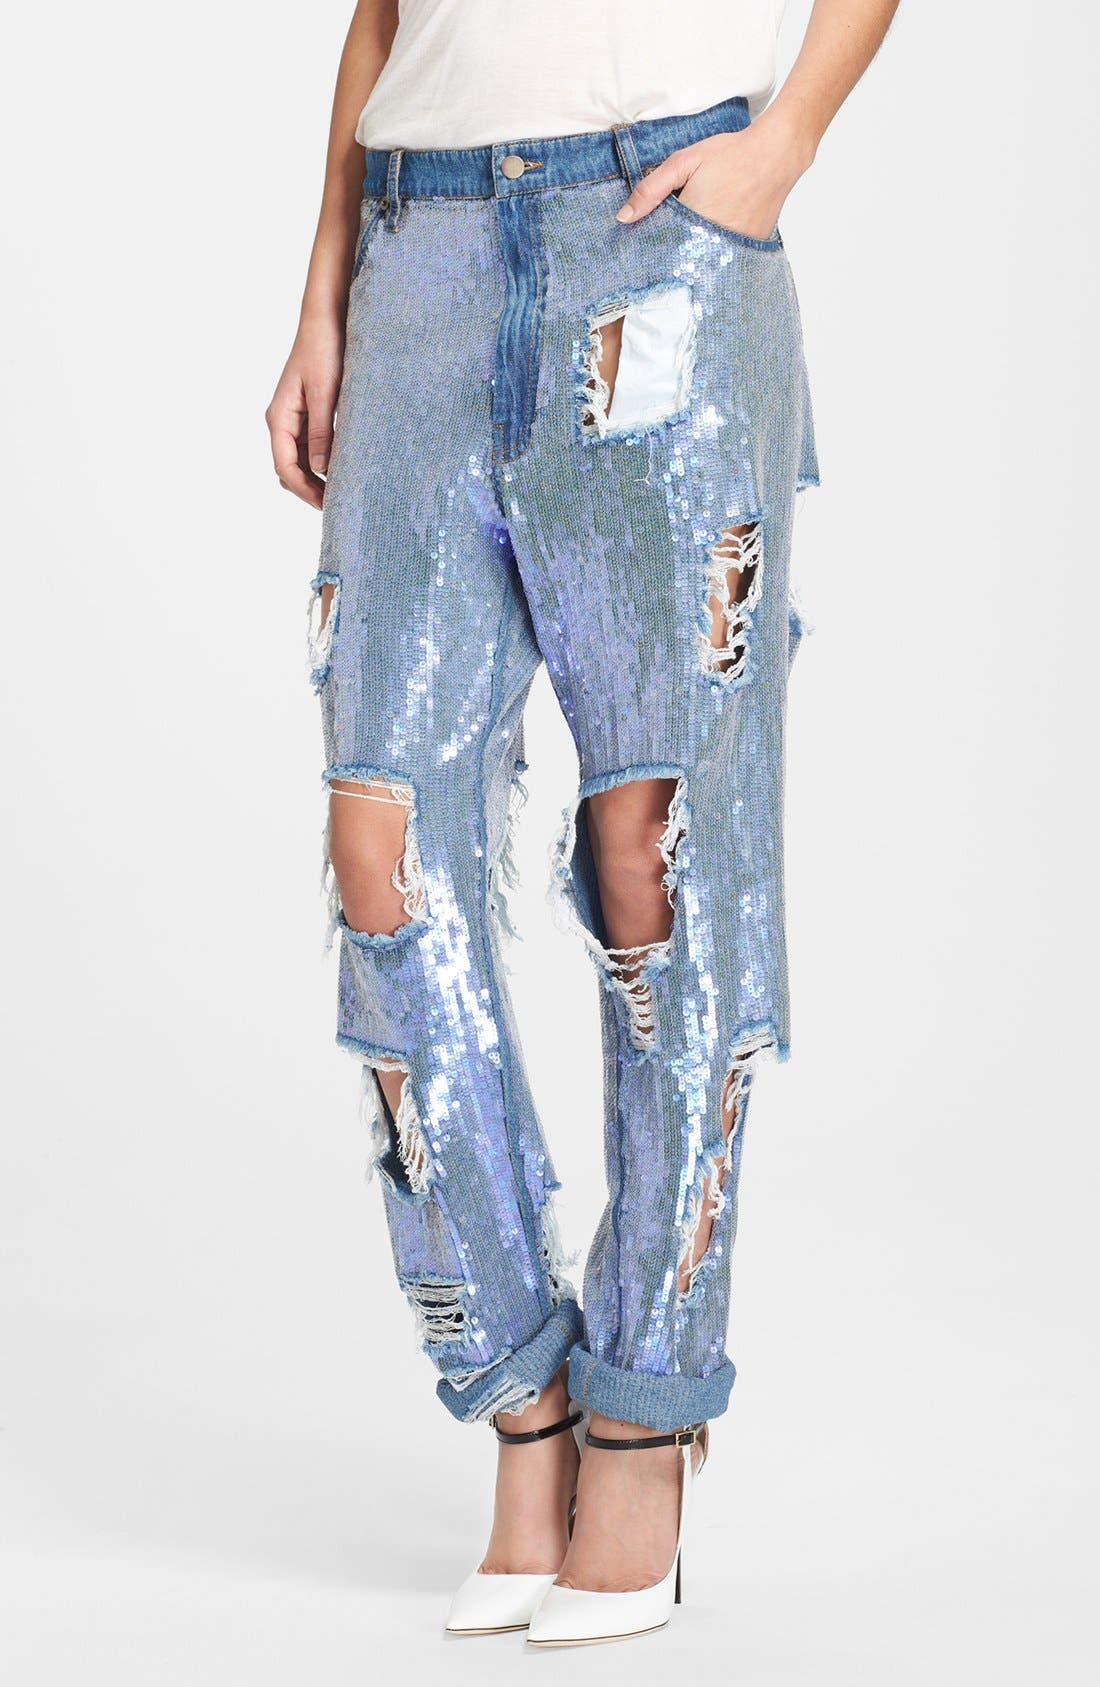 ASHISH,                             Destroyed Sequin Jeans,                             Main thumbnail 1, color,                             400